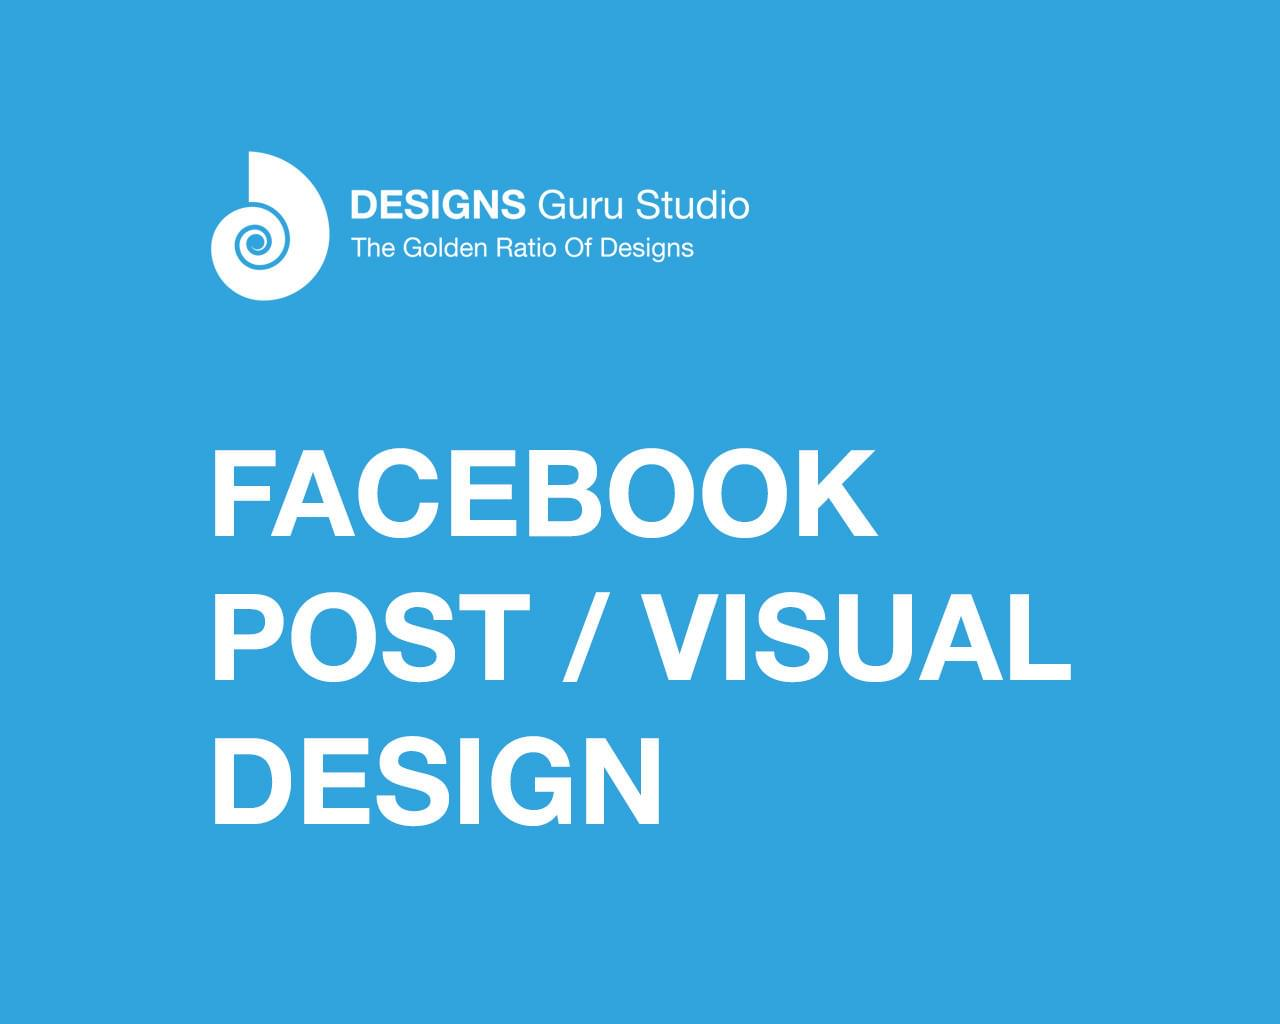 Facebook Post / Visual Design by designsgurustudio - 116364